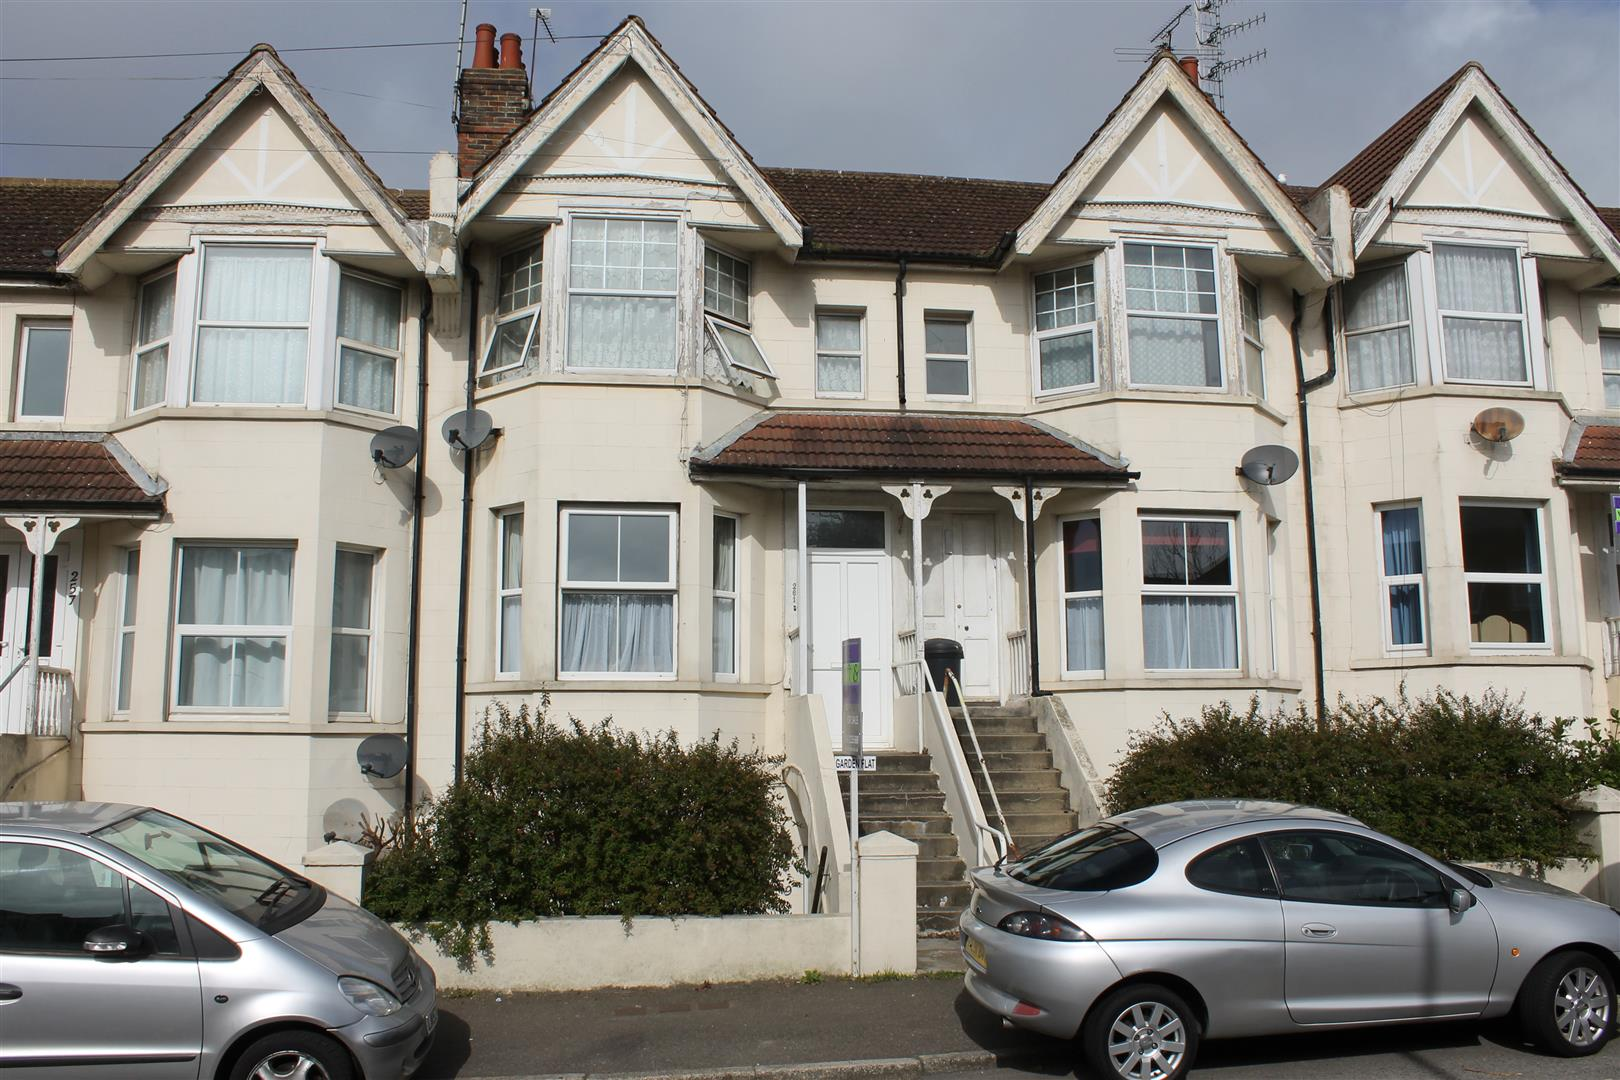 Property Details For London Road Bexhill On Sea East